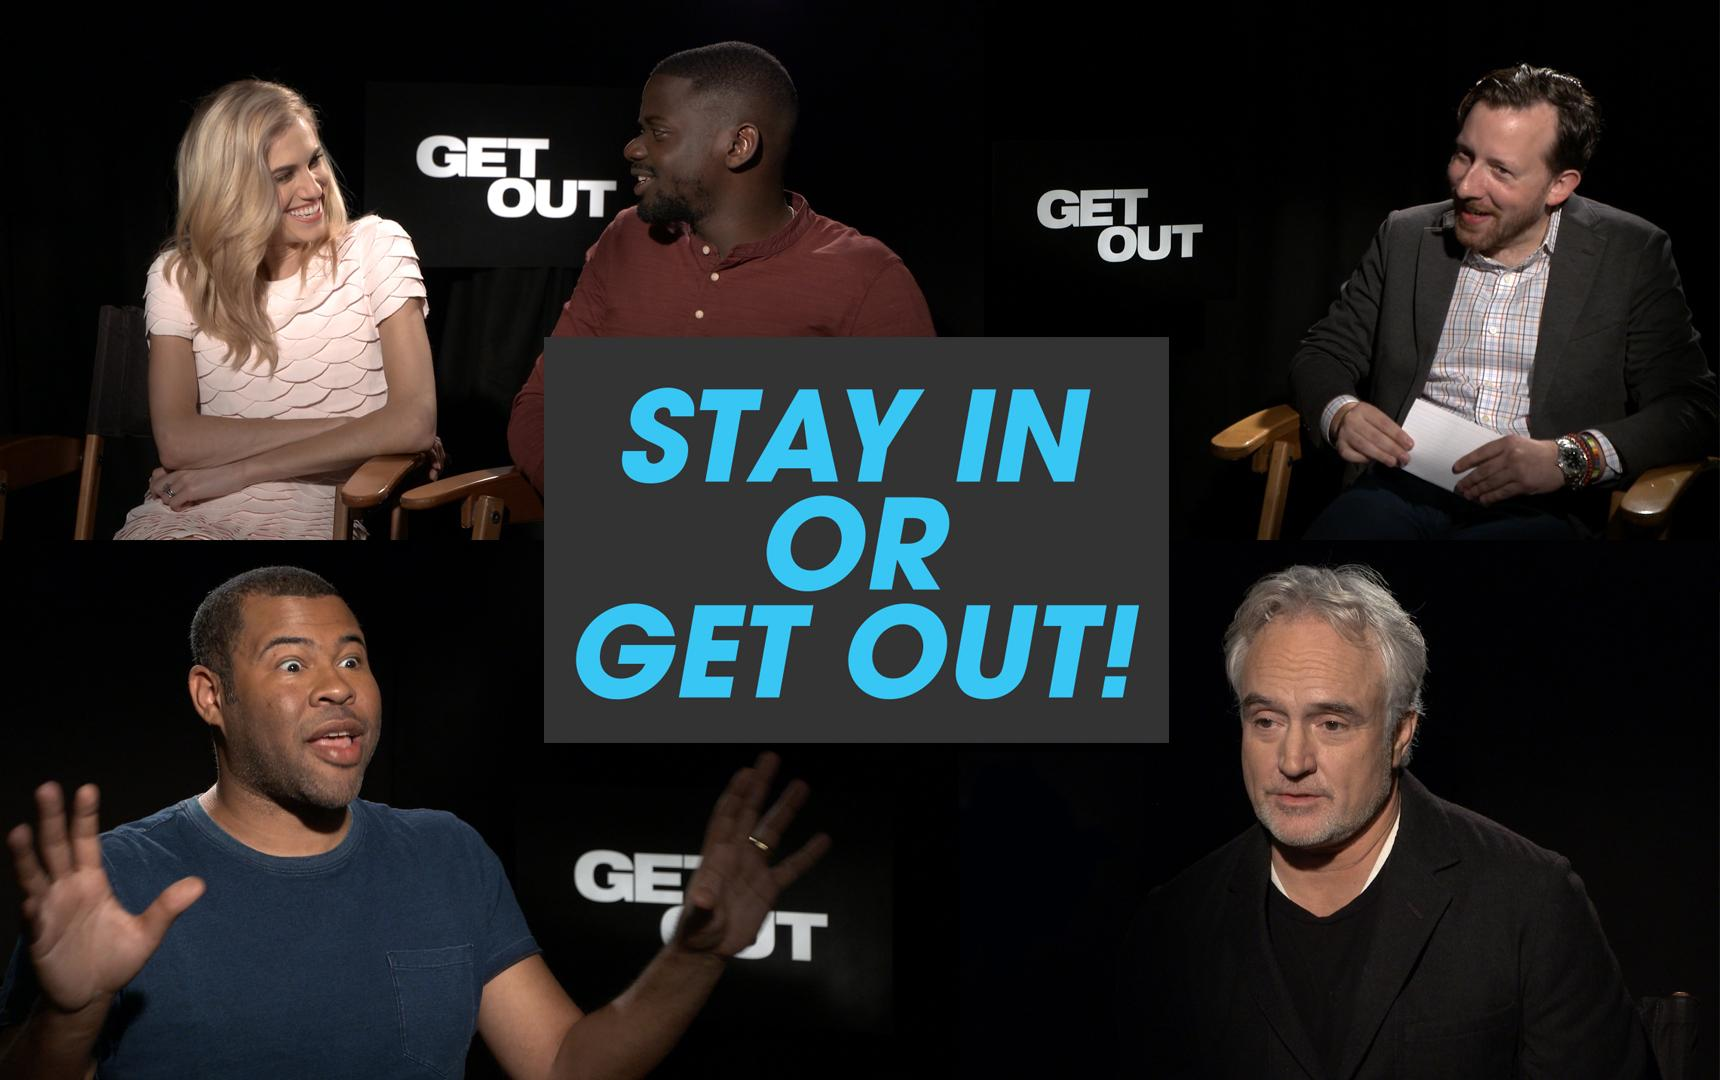 Watch the Cast of 'Get Out' Play 'Stay in or Get Out?'